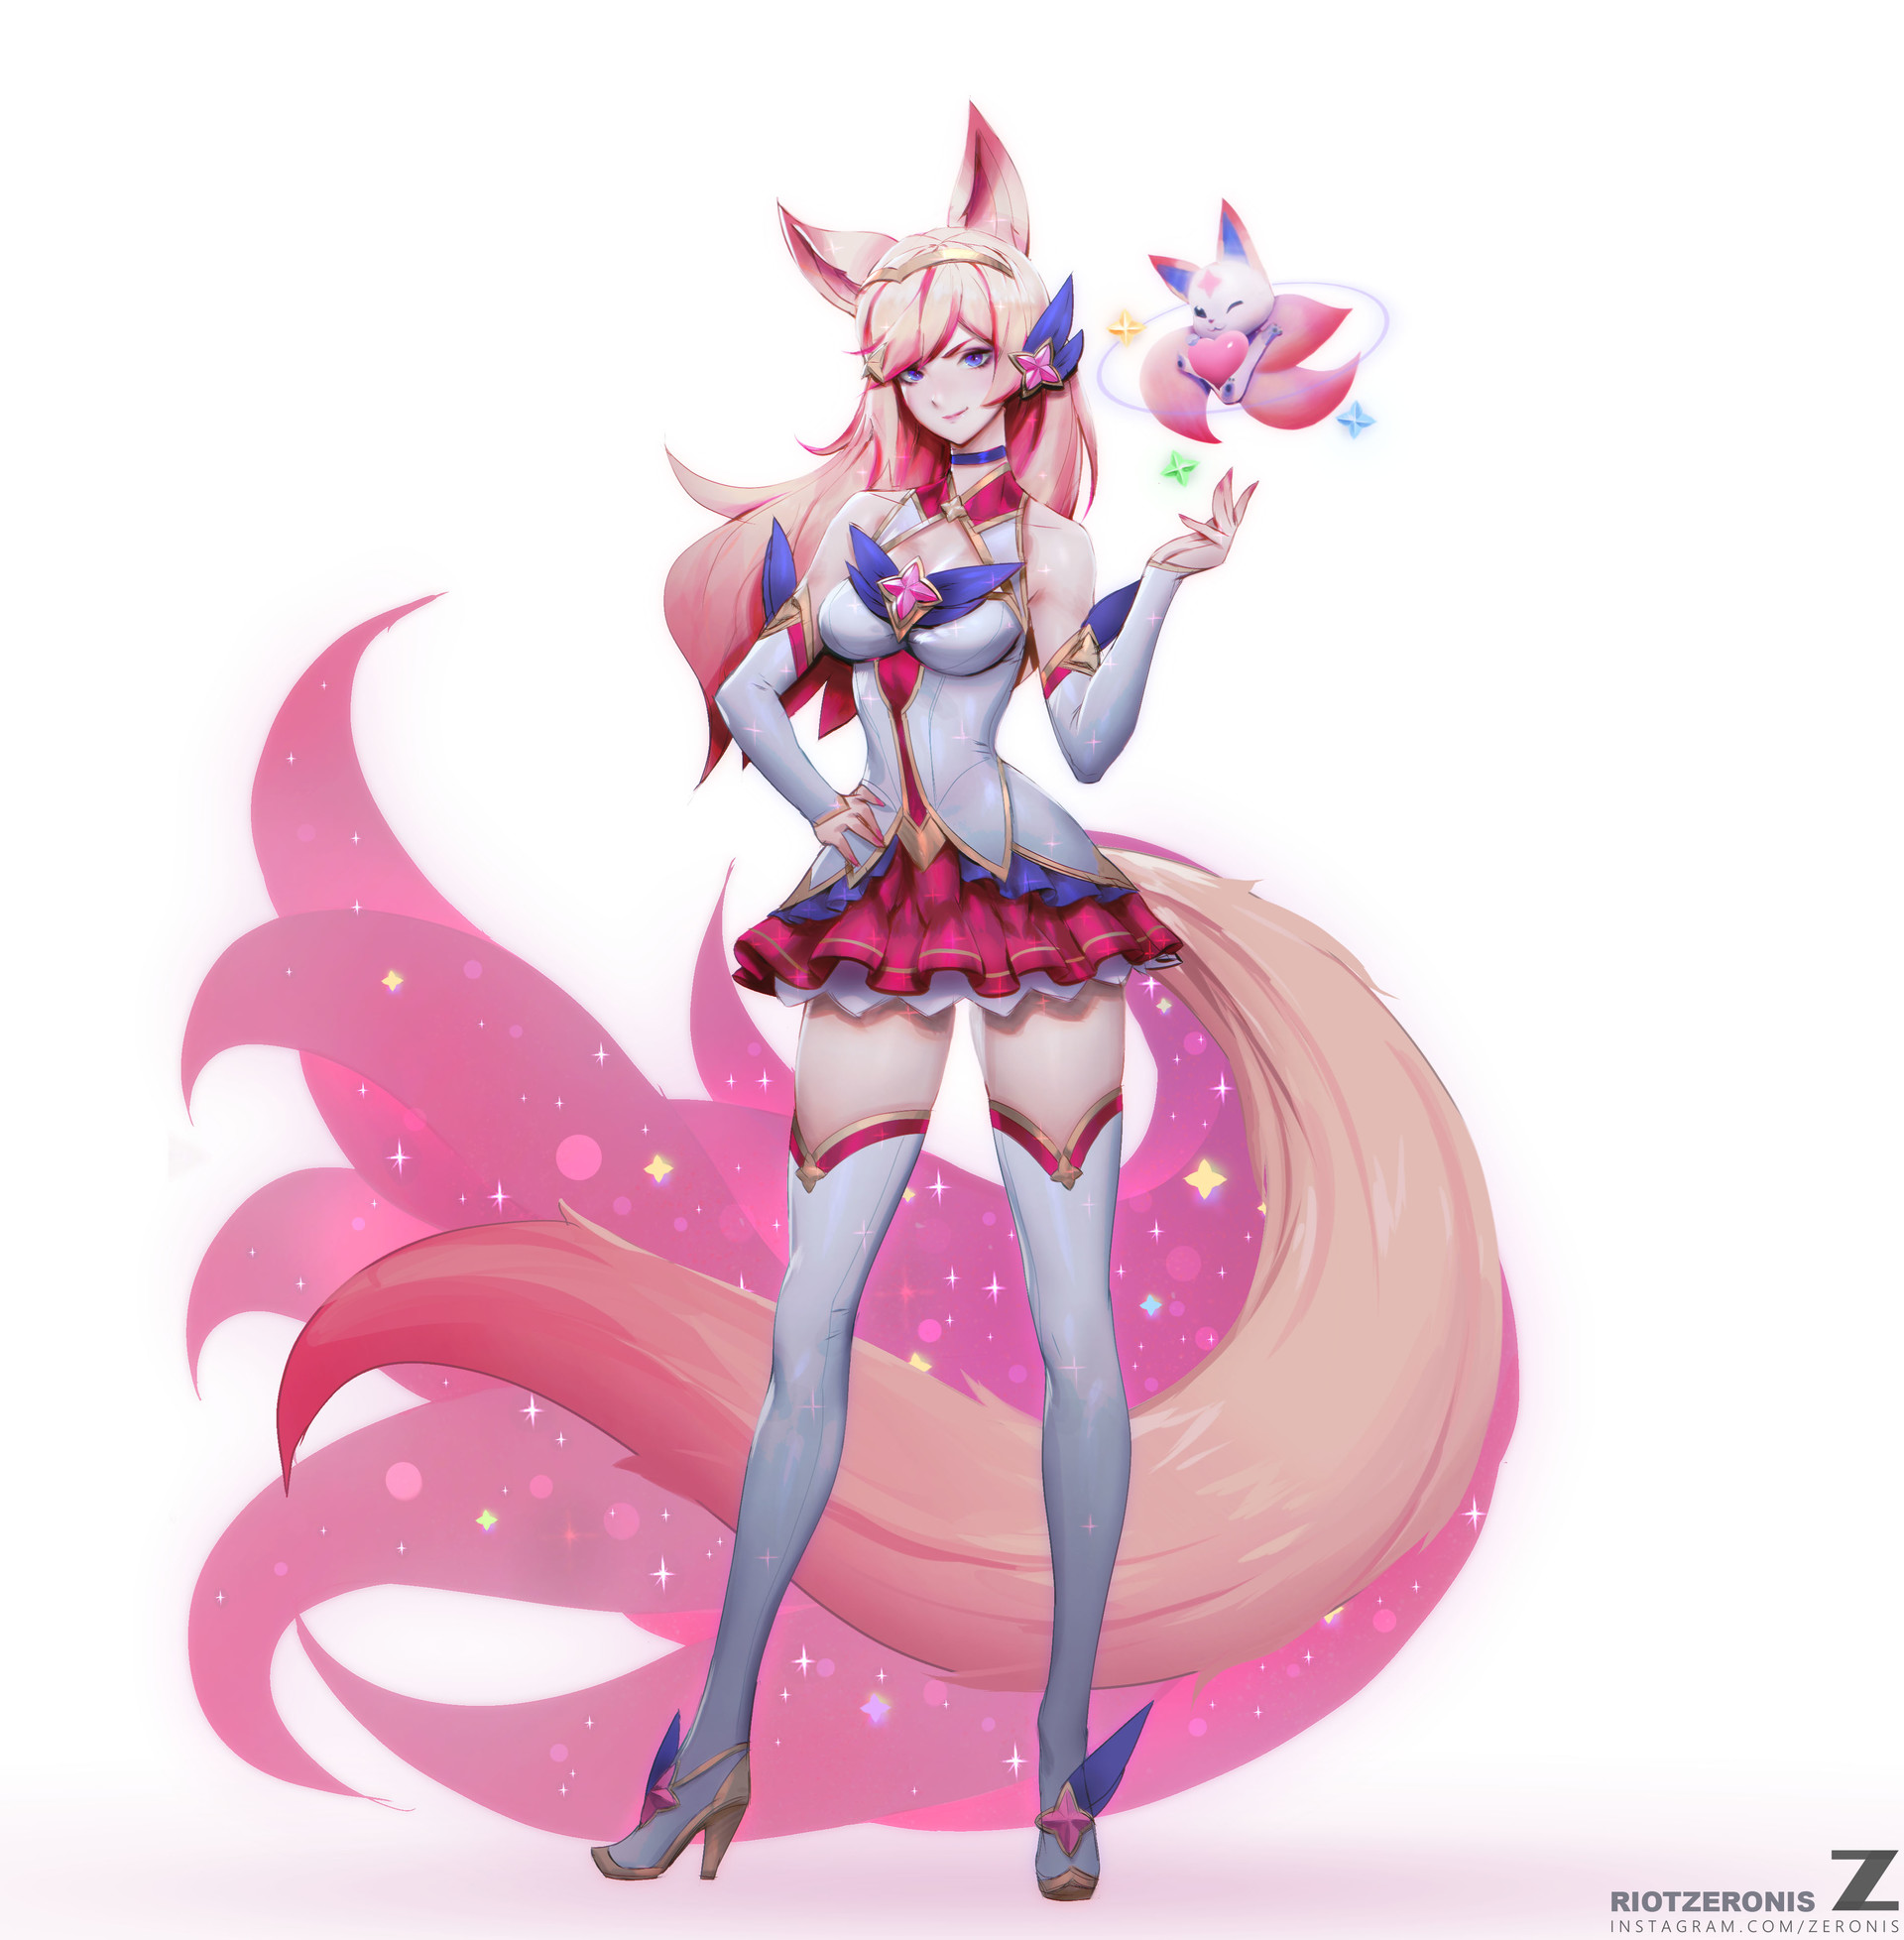 paul-kwon-sg-s2-legendary-ahri-concept-final-02.jpg